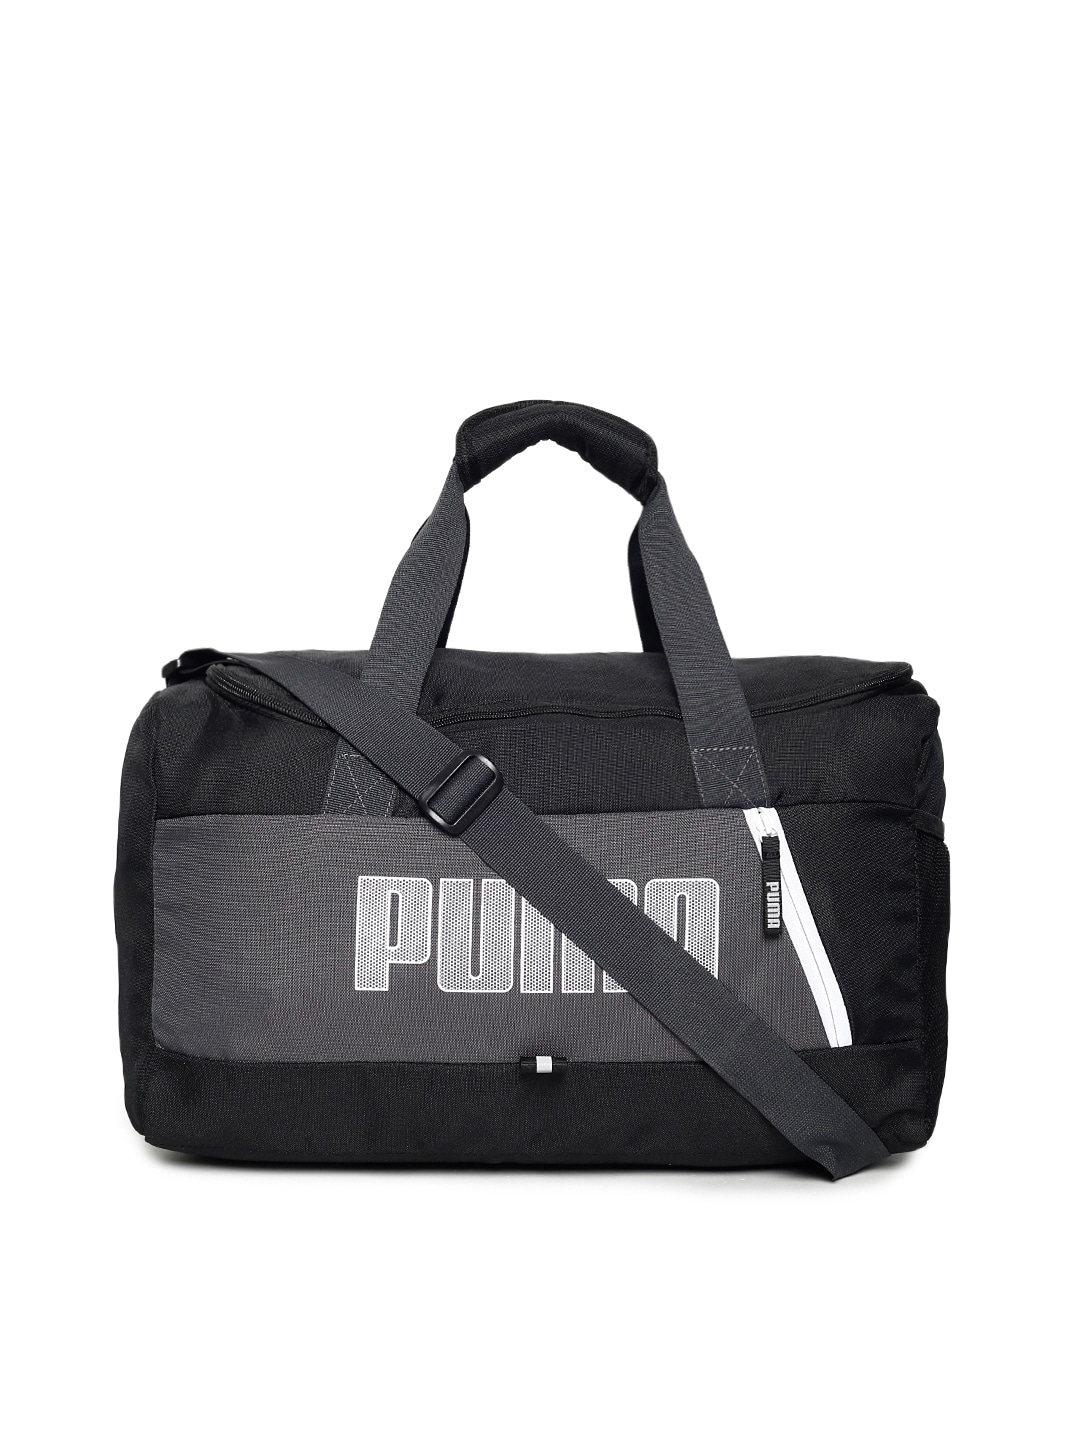 4db3088402ba3a Myntra Flip S Puma Men Black Green Bags - Buy Myntra Flip S Puma Men ...